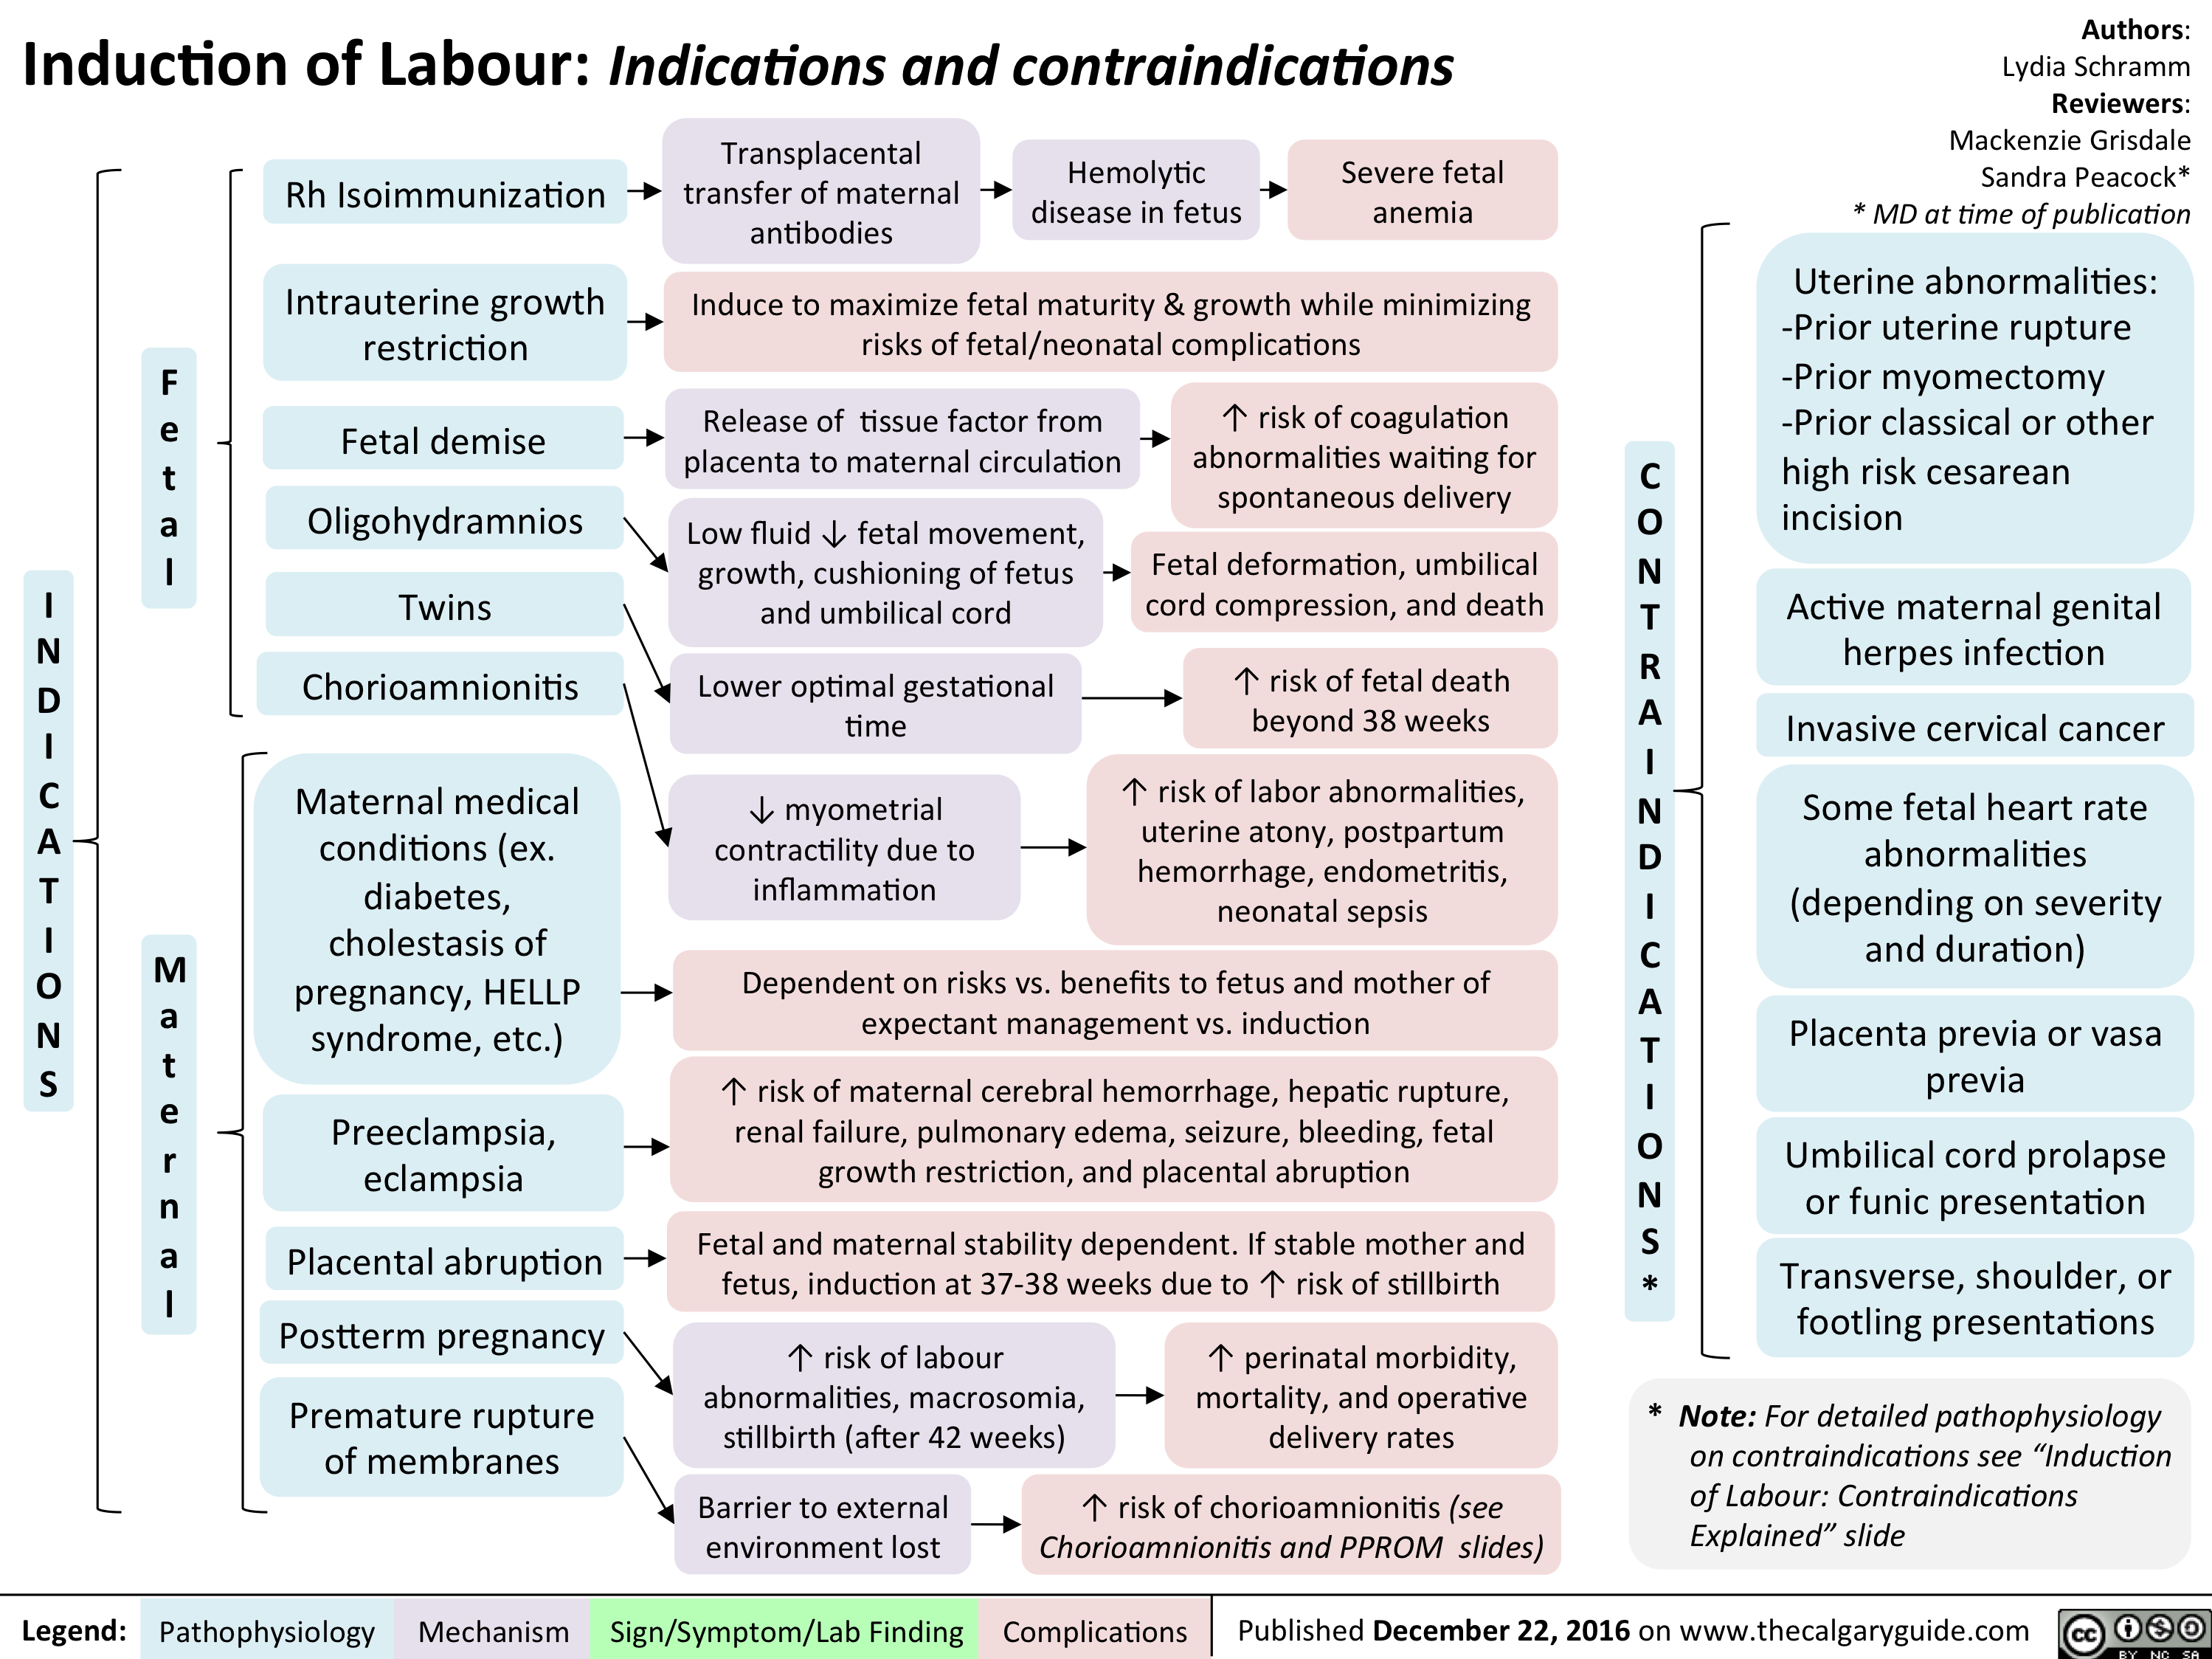 induction-of-labour-indications-and-contraindications